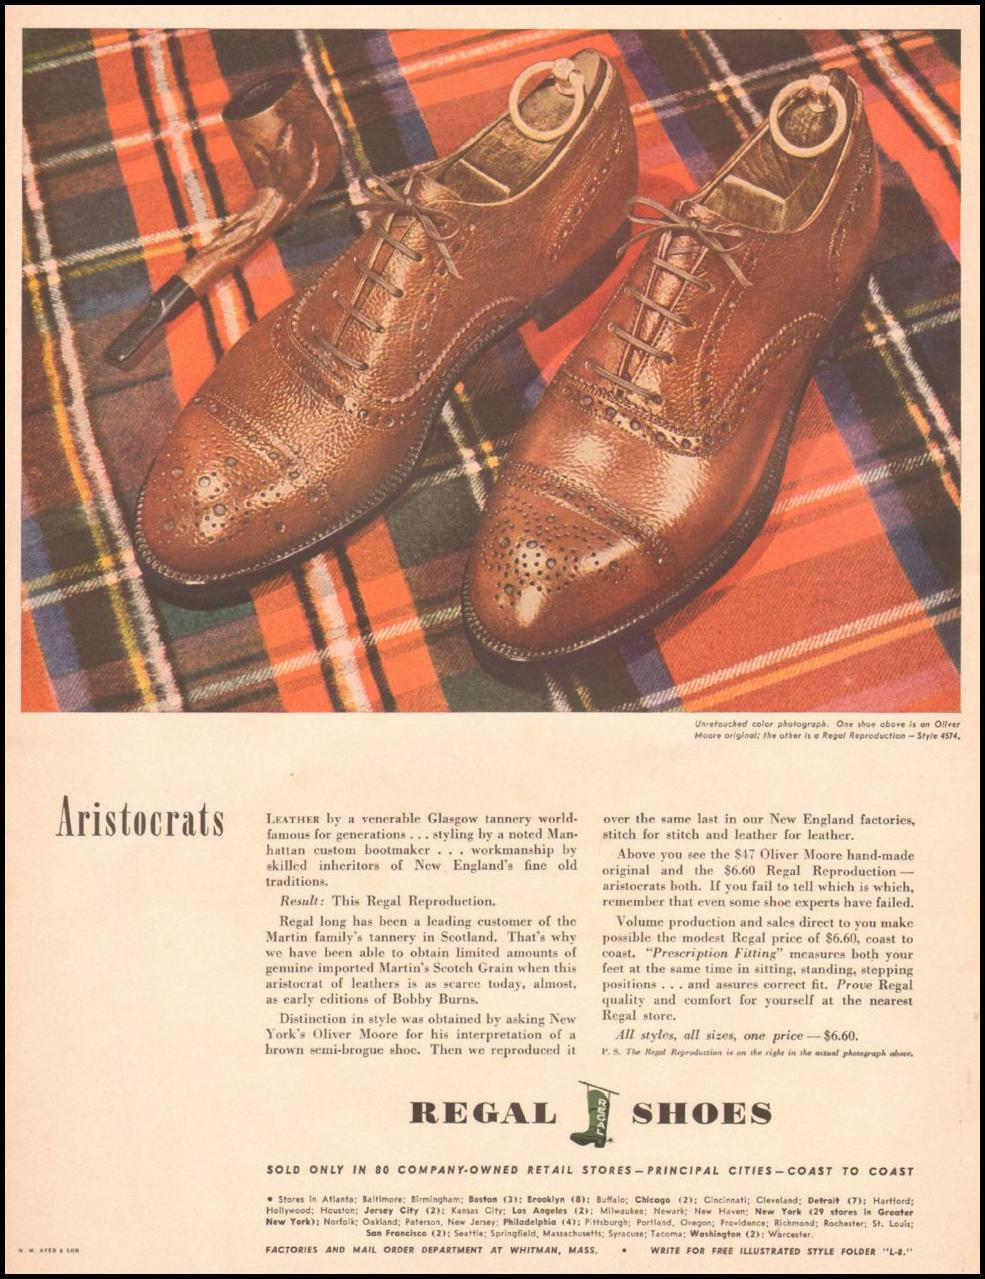 REGAL SHOES LIFE 10/25/1943